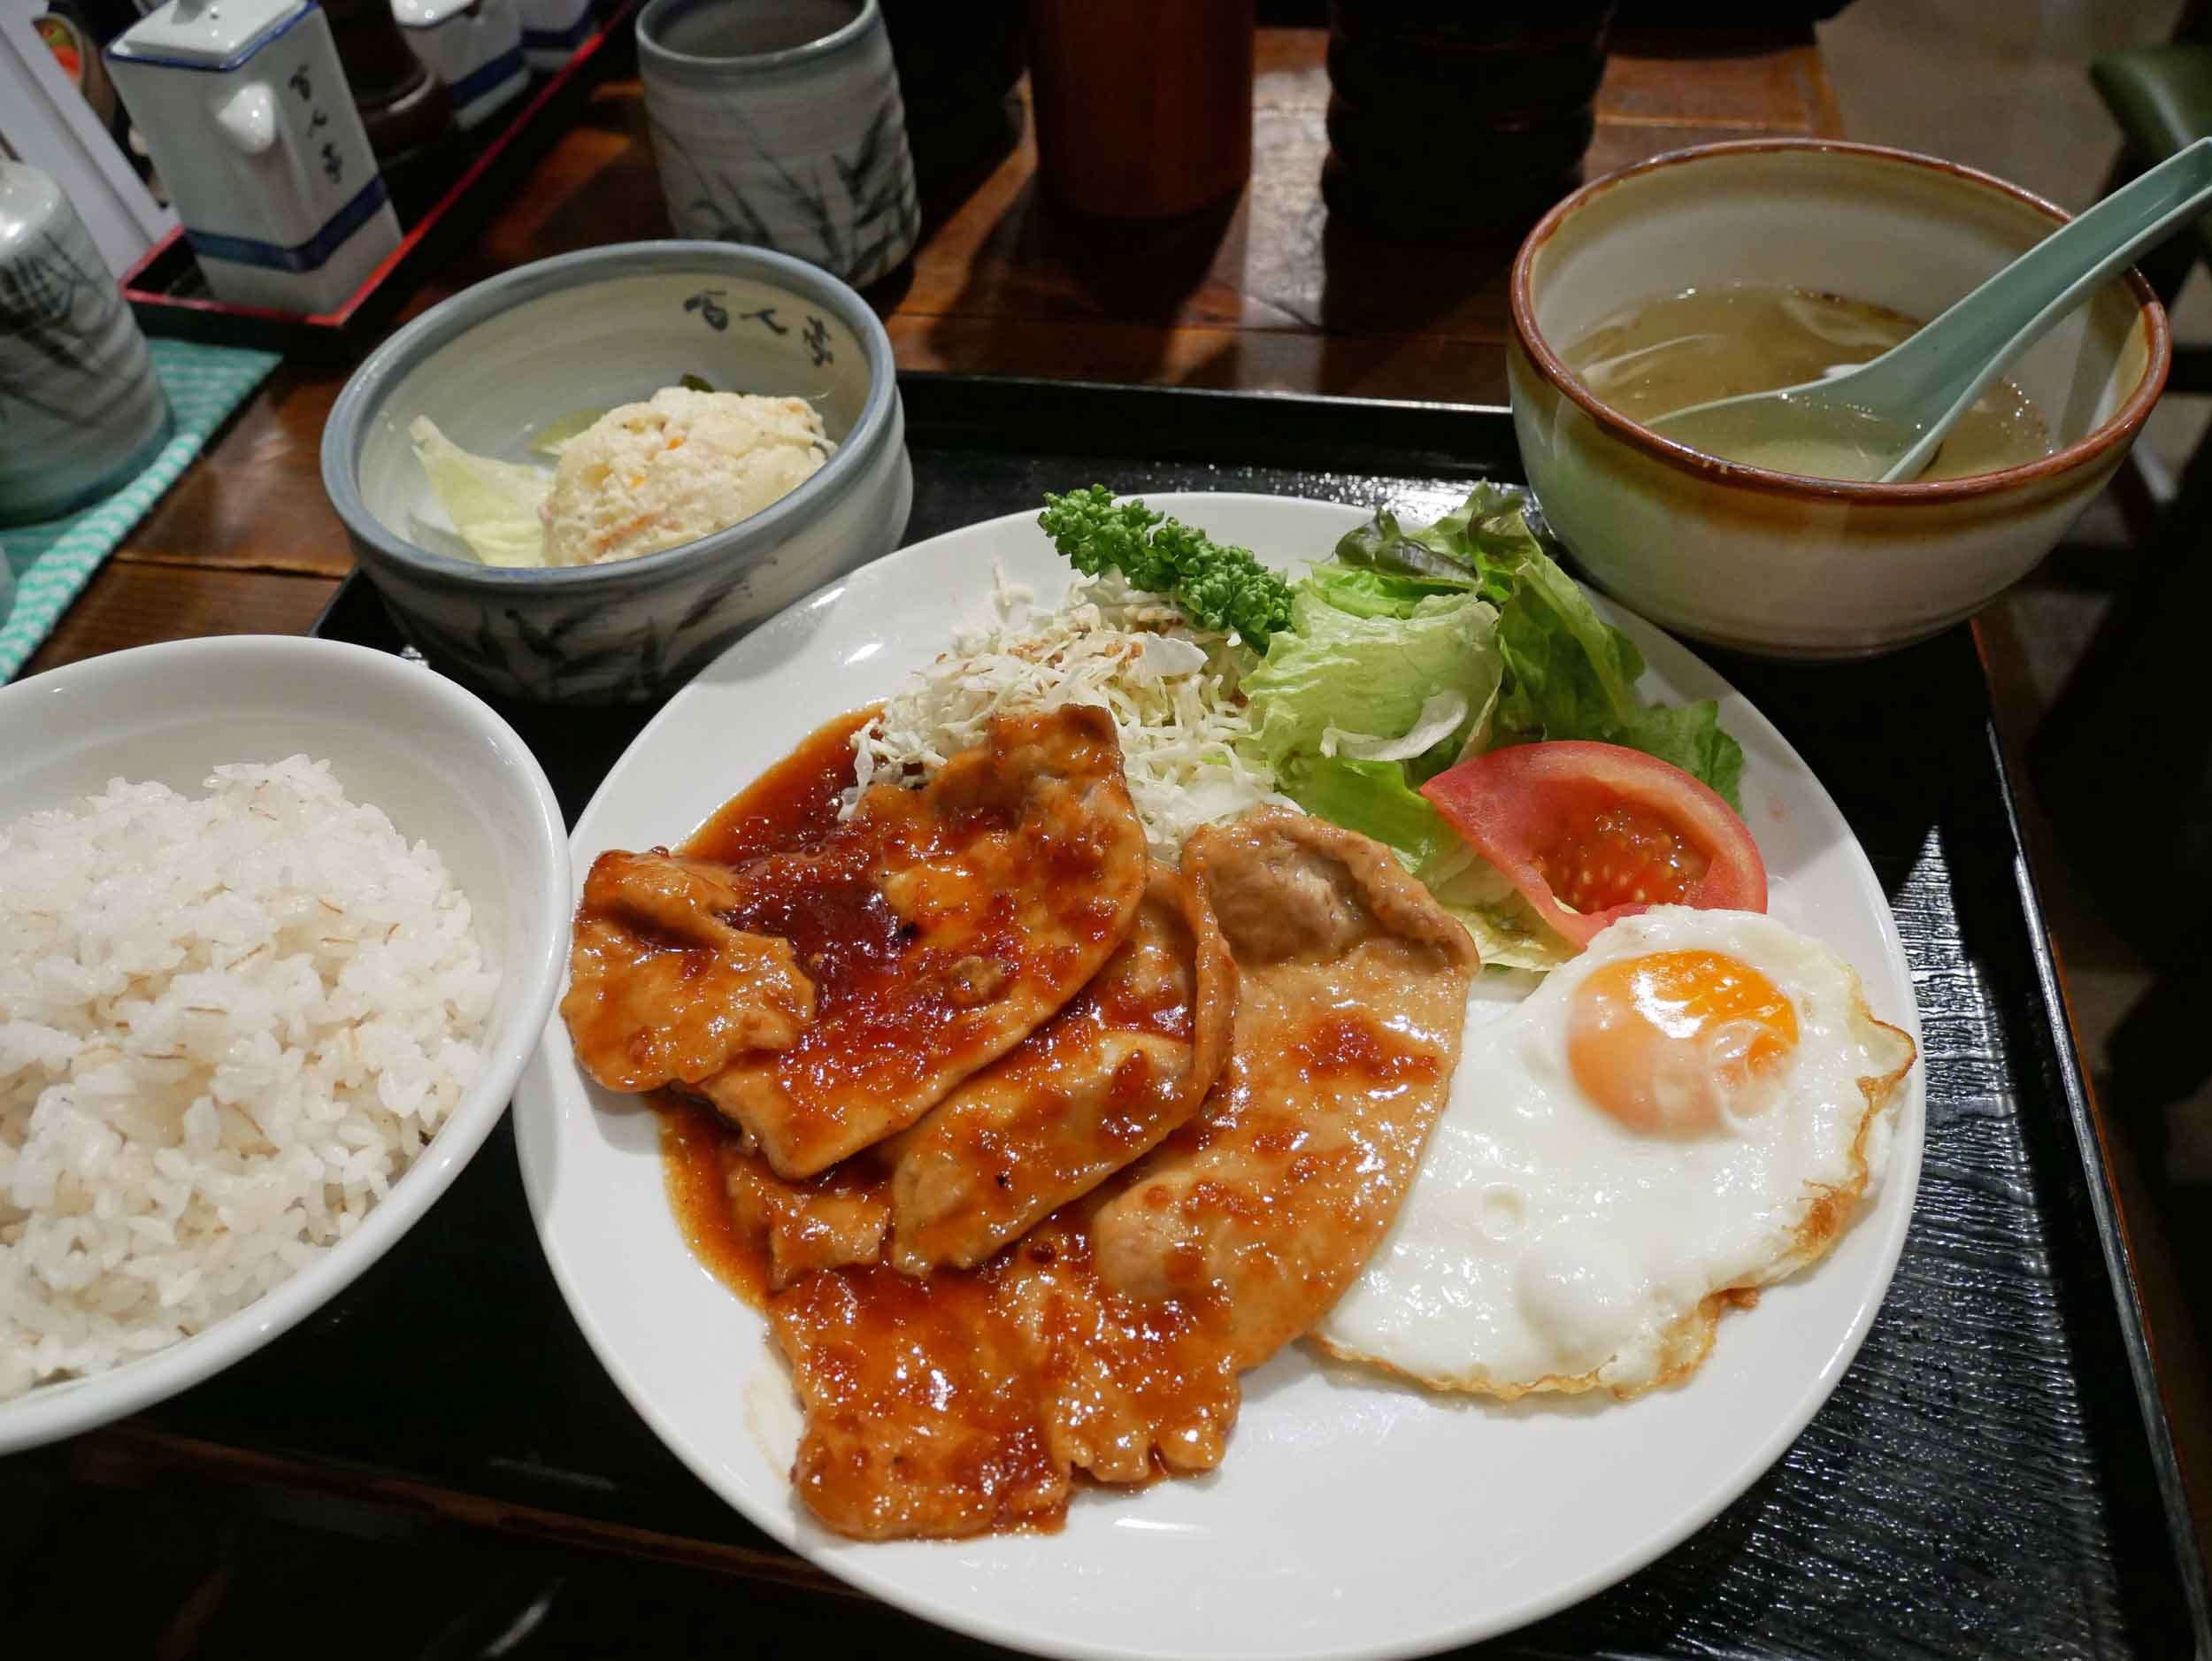 After our garden walk, we grabbed lunch like many of the office workers in Takebashi Station.